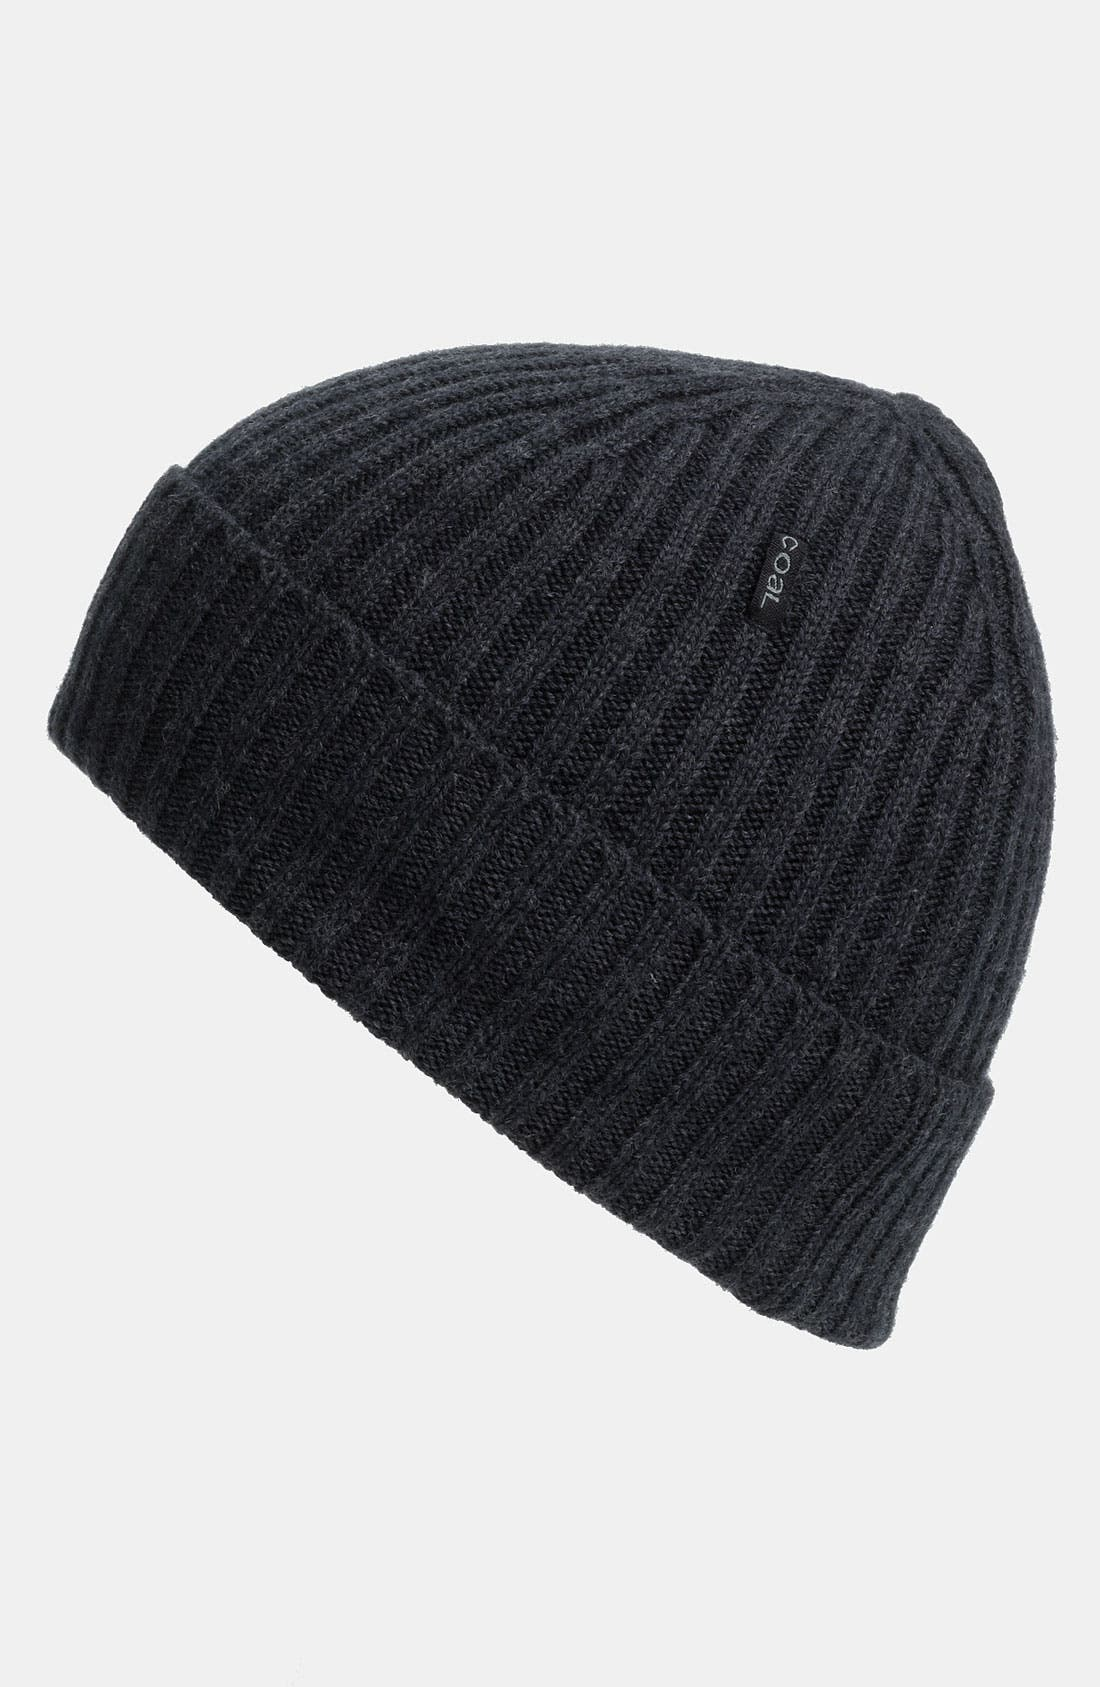 Alternate Image 1 Selected - Coal 'Emerson' Knit Cap